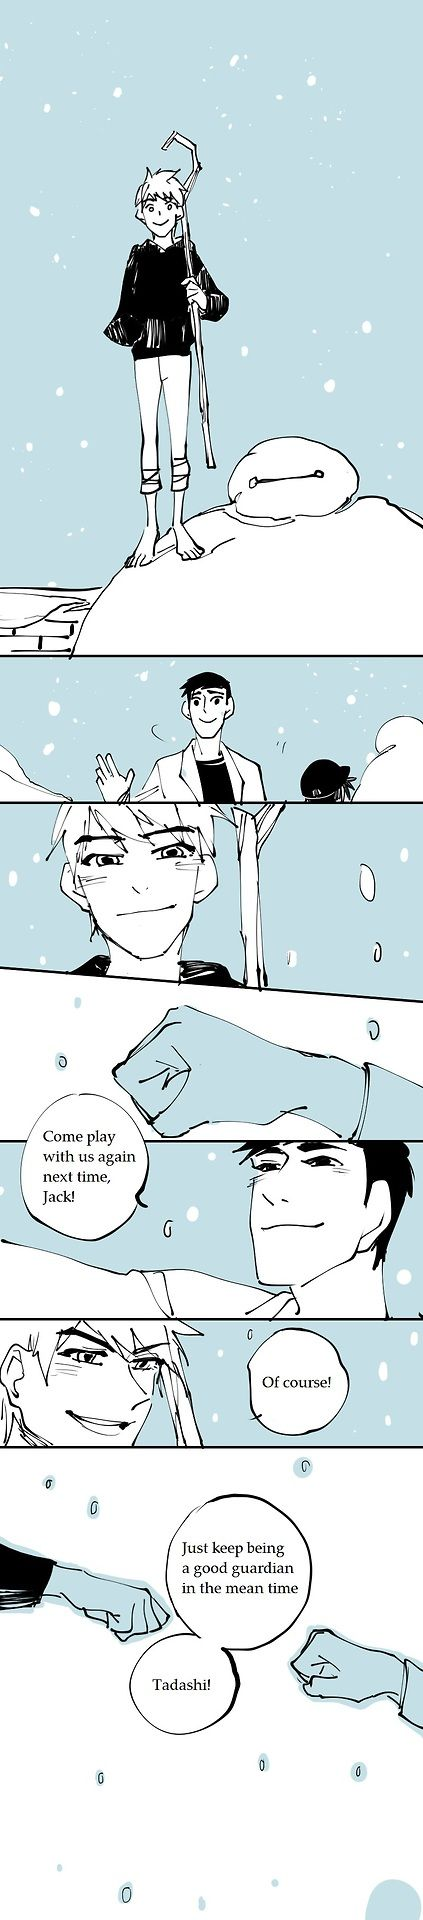 Big Hero 6 and Rise of the Guardians crossover - pg14